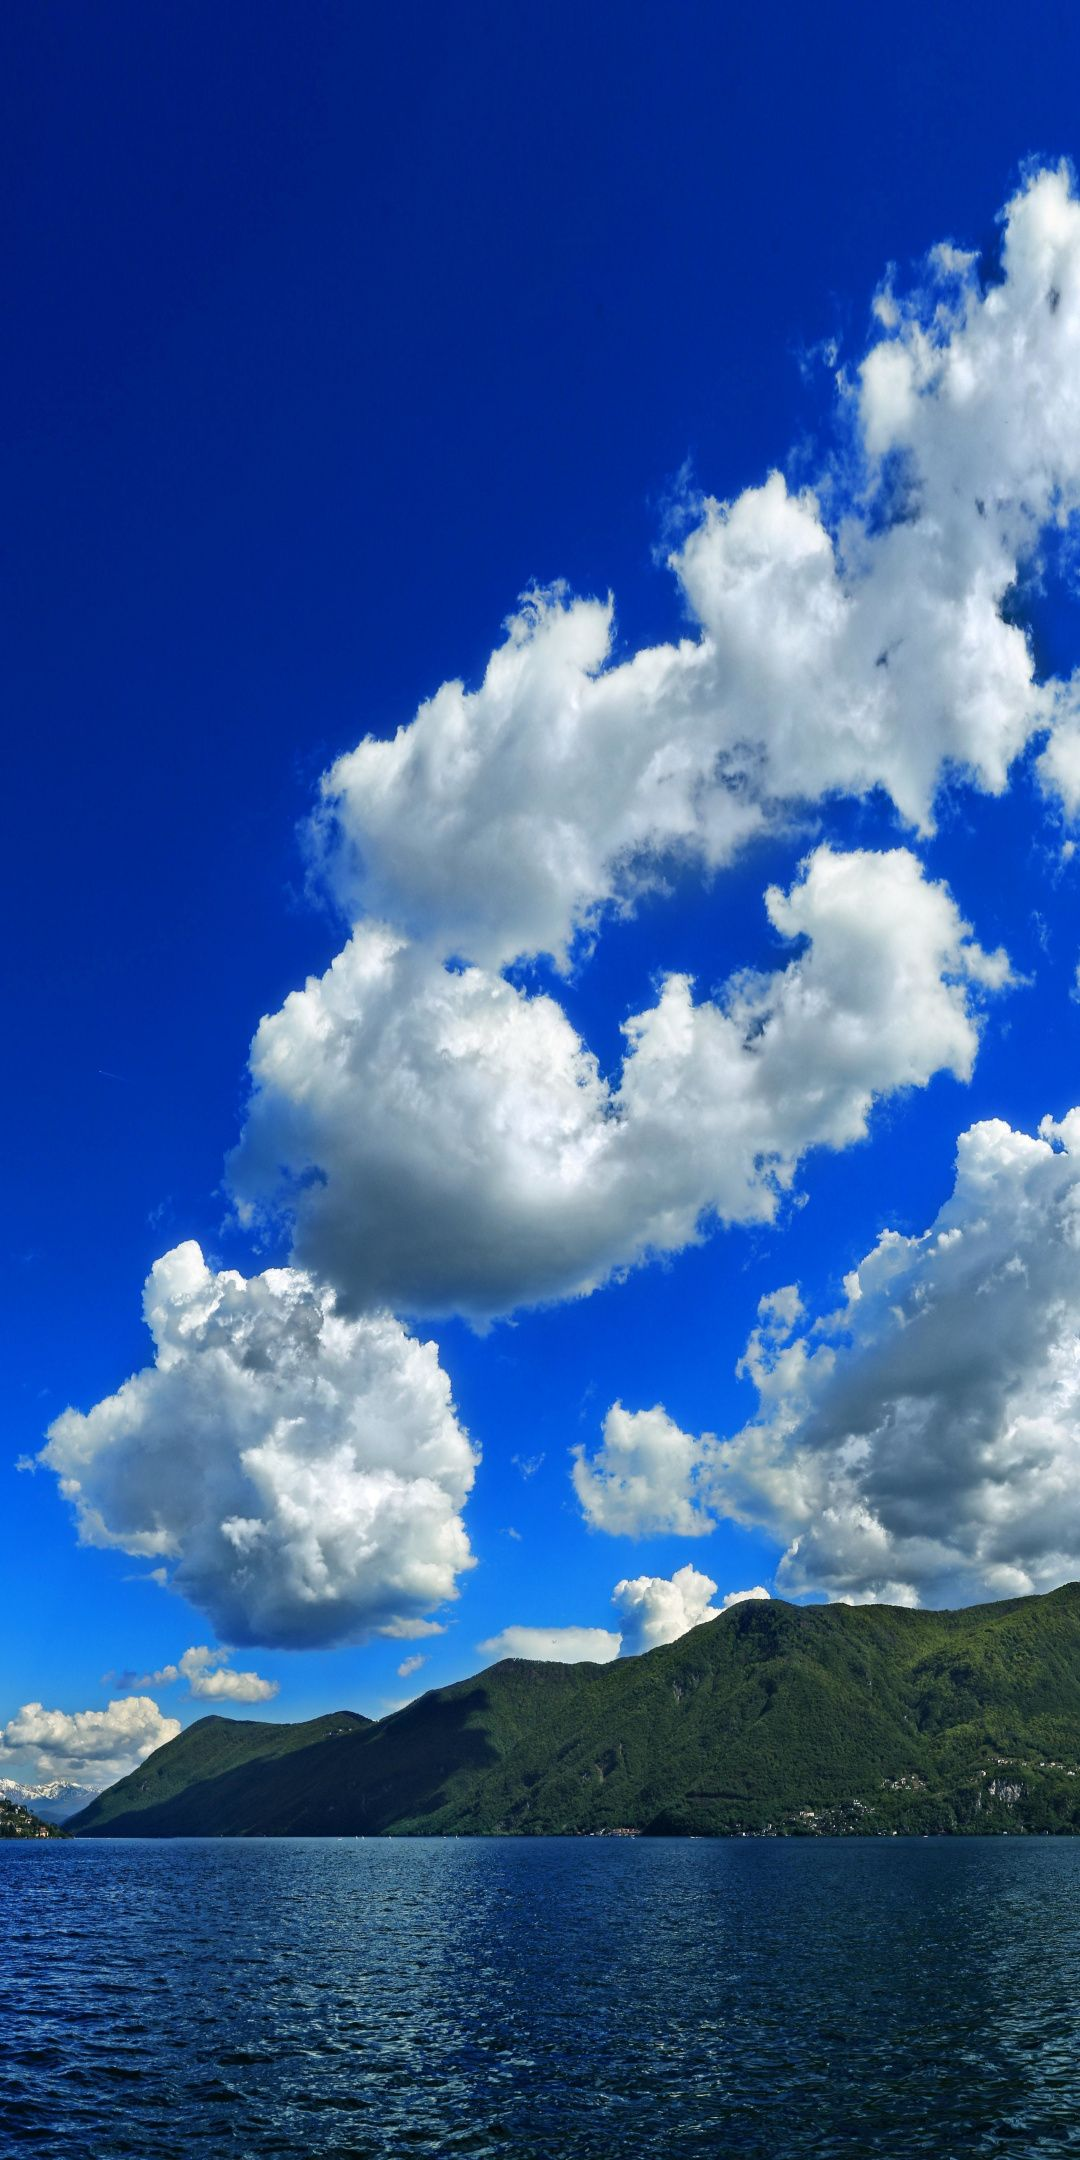 White Clouds Blue Sky Mountains Sea Nature 1080x2160 Wallpaper Beautiful Photos Of Nature Blue Sky Clouds Clouds